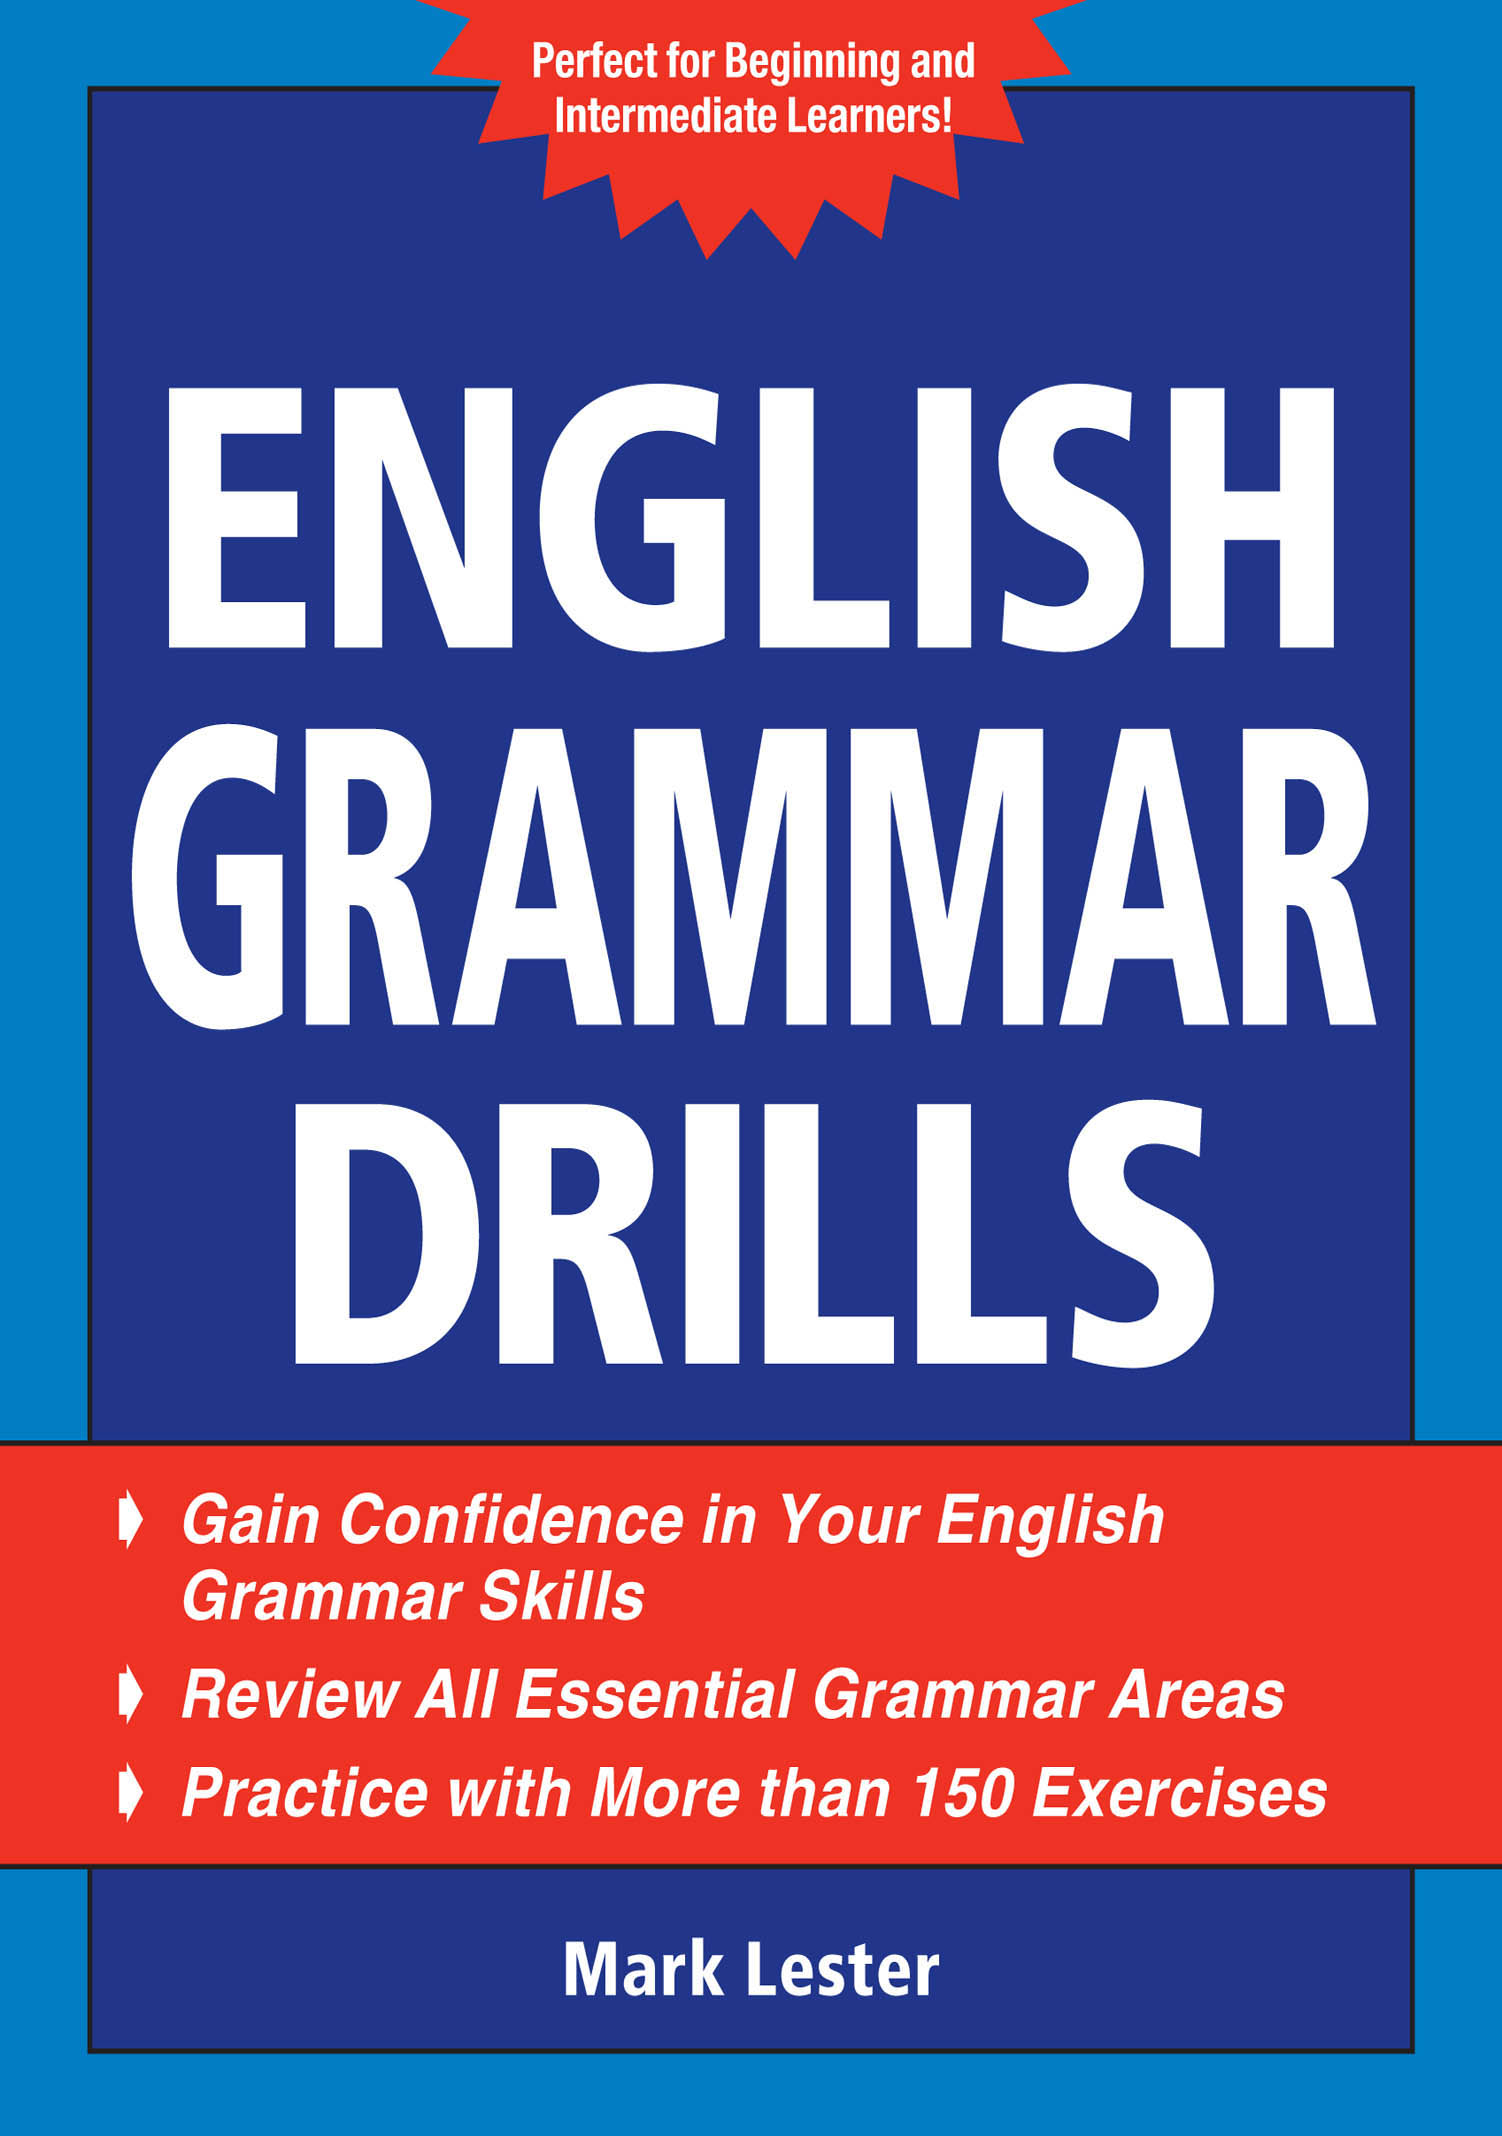 Download Ebook English Grammar Drills by Mark Lester Pdf